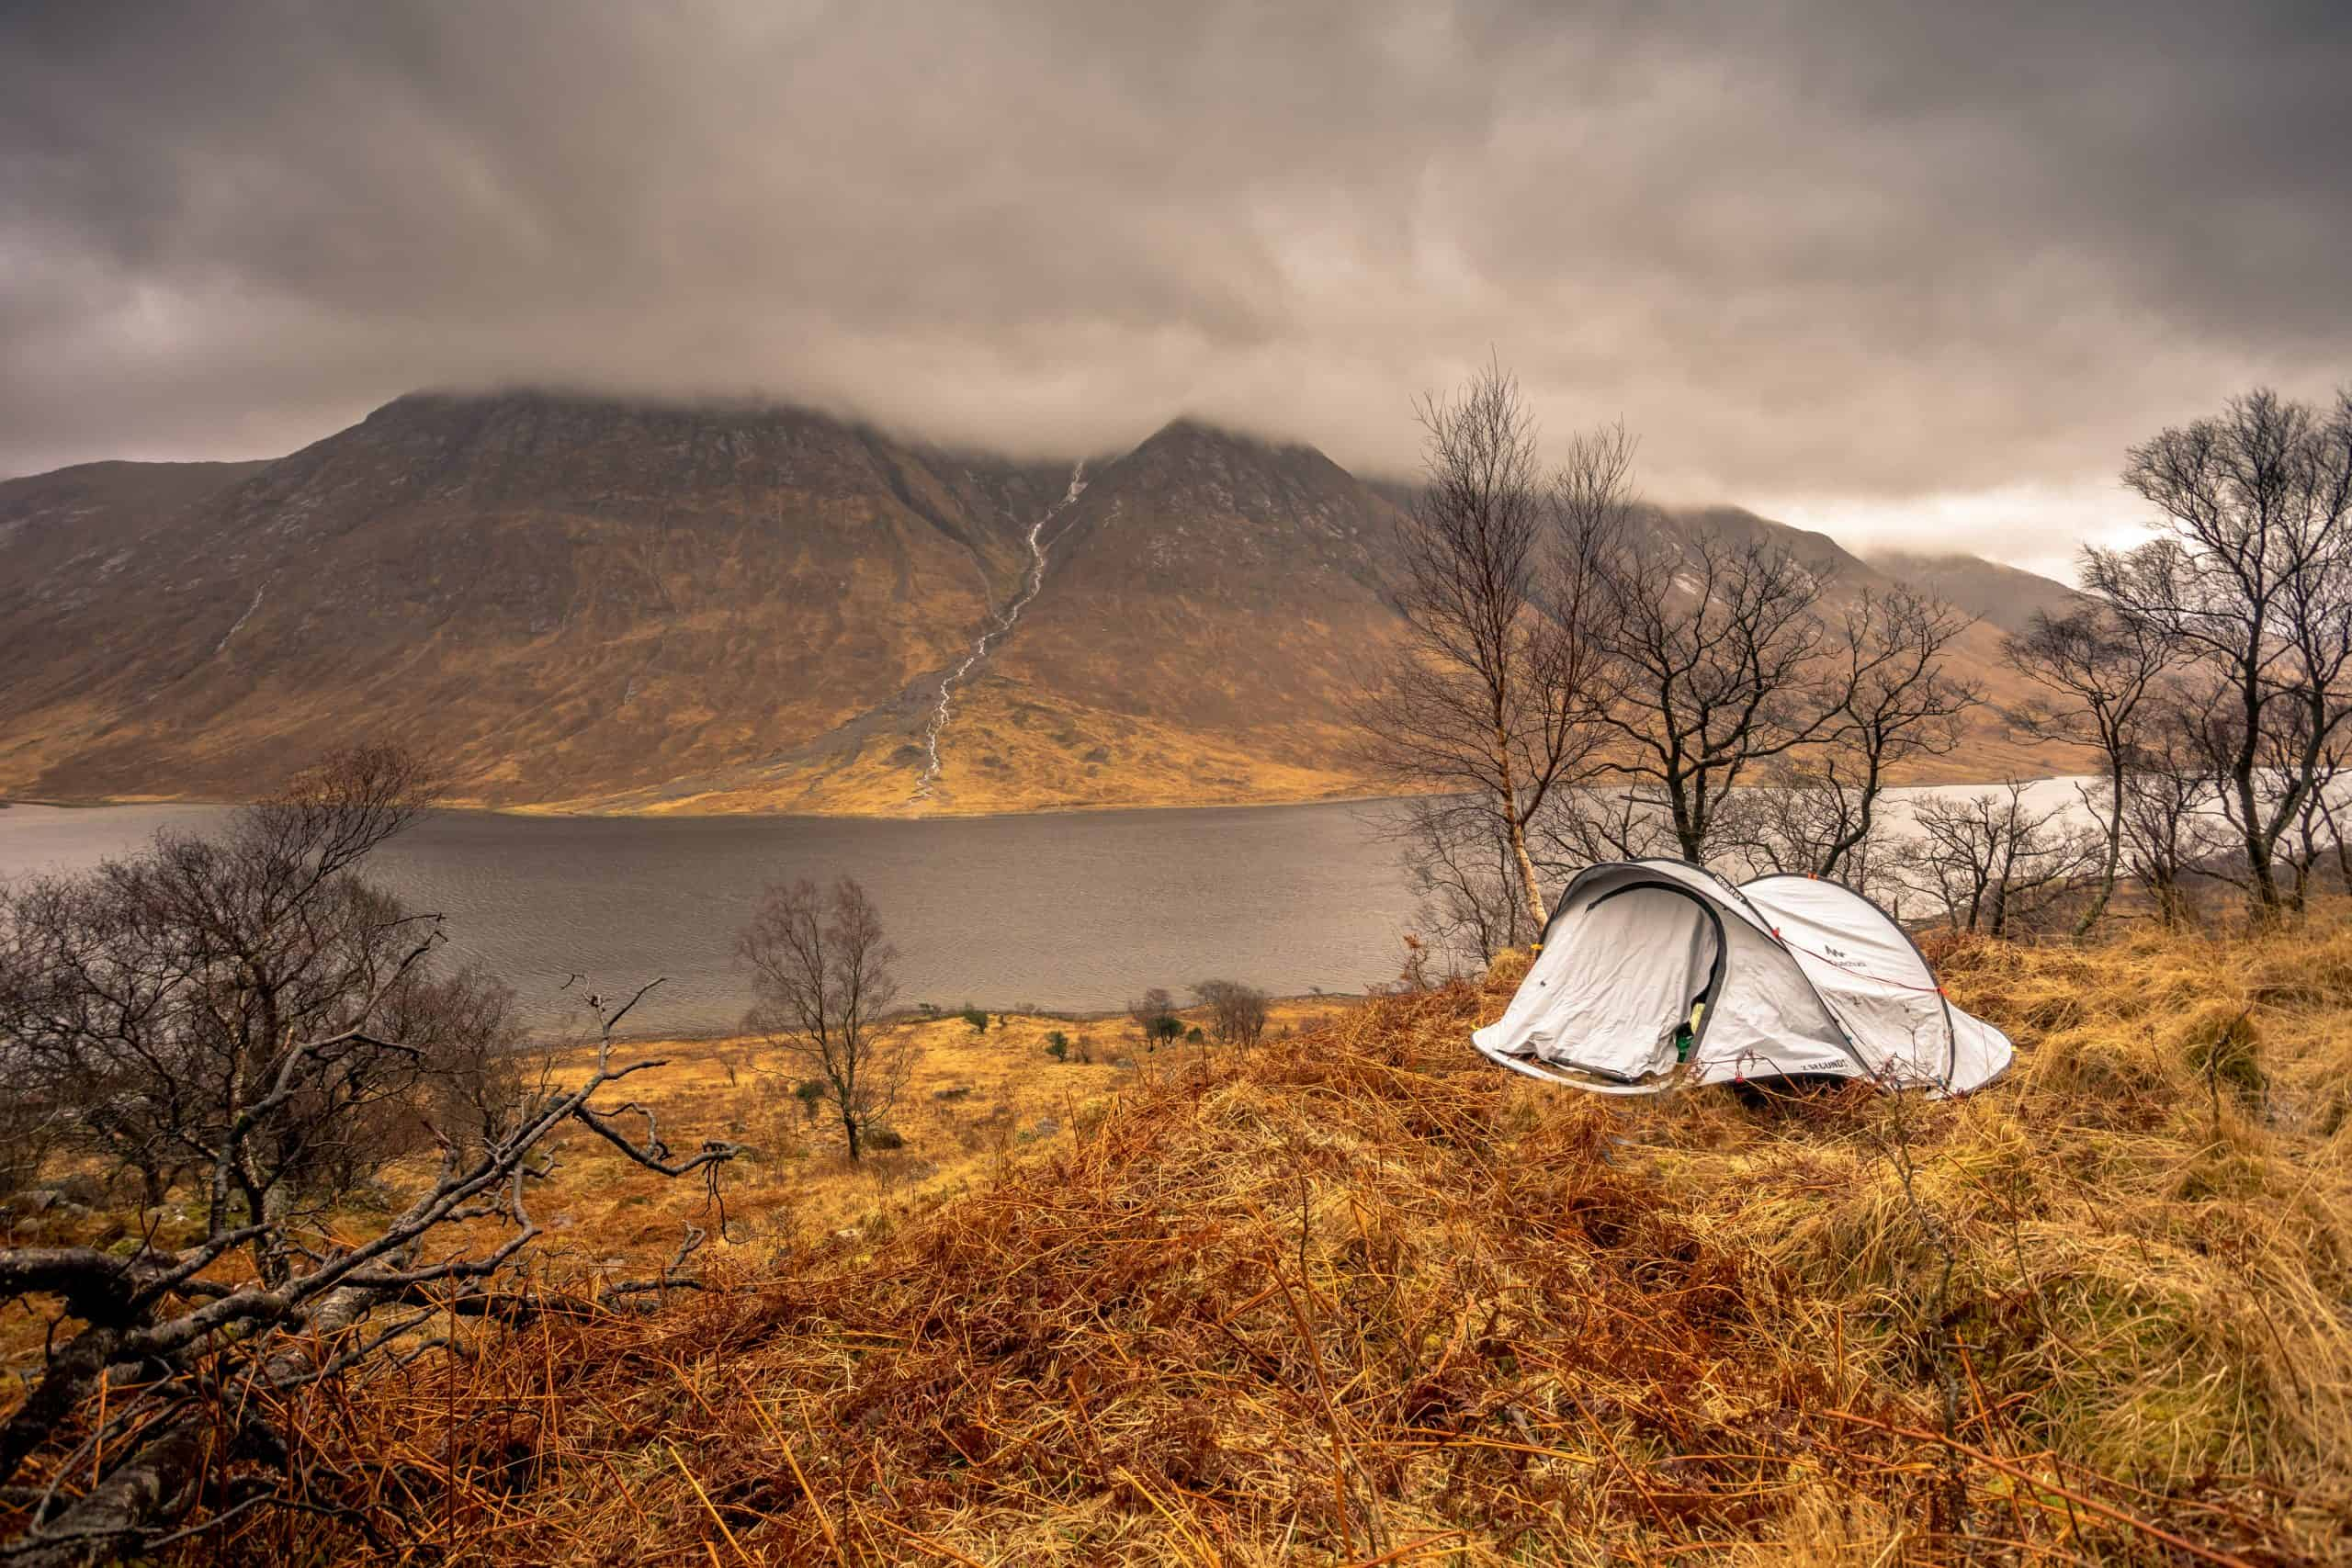 a tent cot set up beside a lake with a mountain in the background